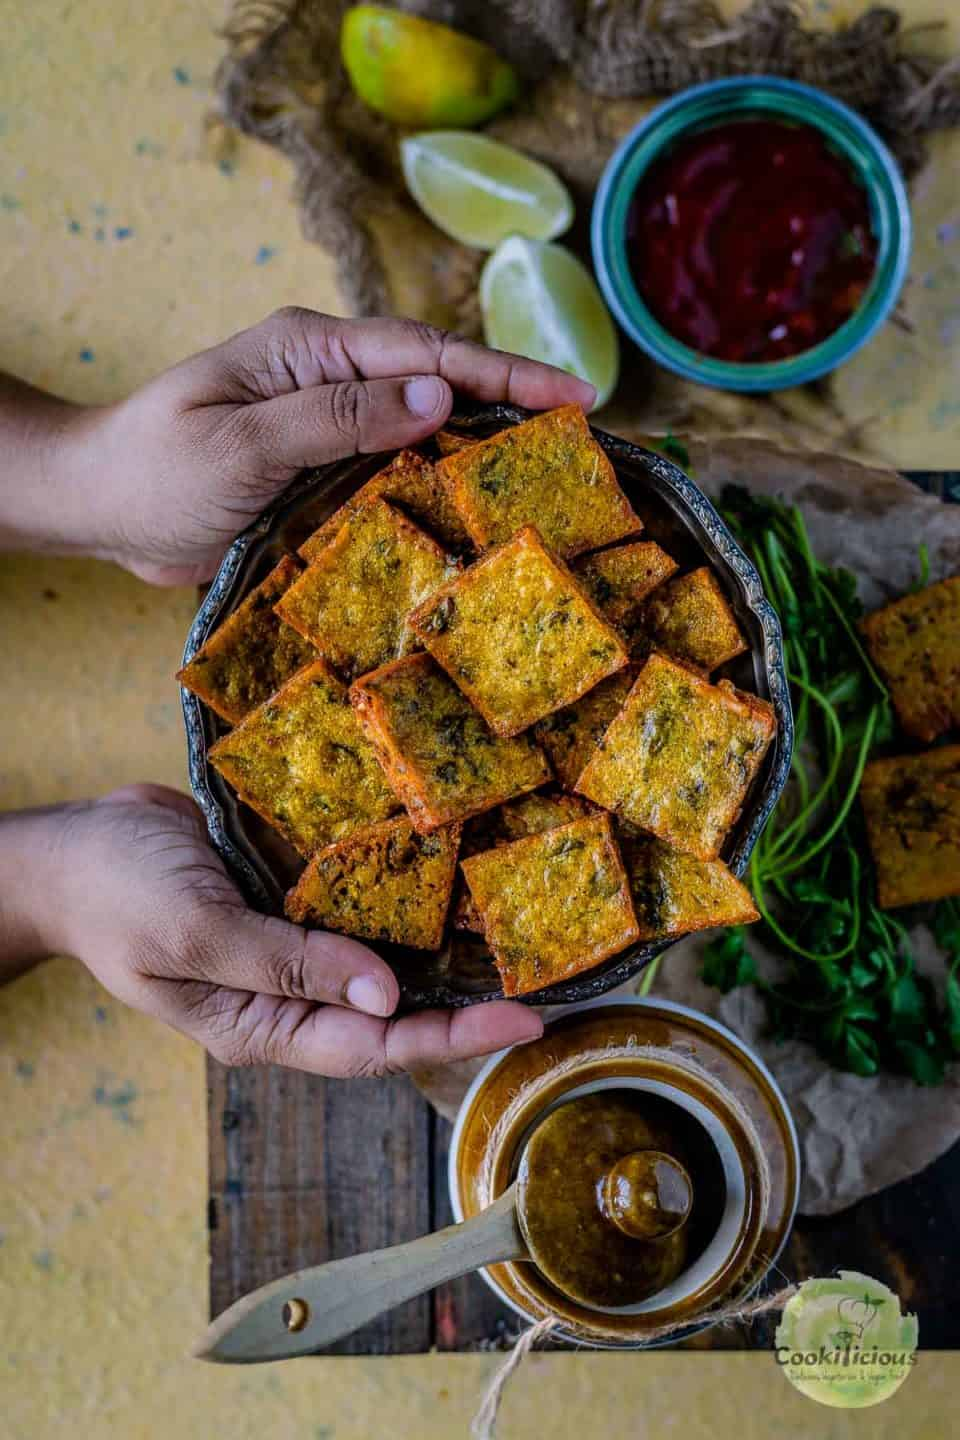 a set of hands holding a platter full of fried Vegan Cabbage Fritters